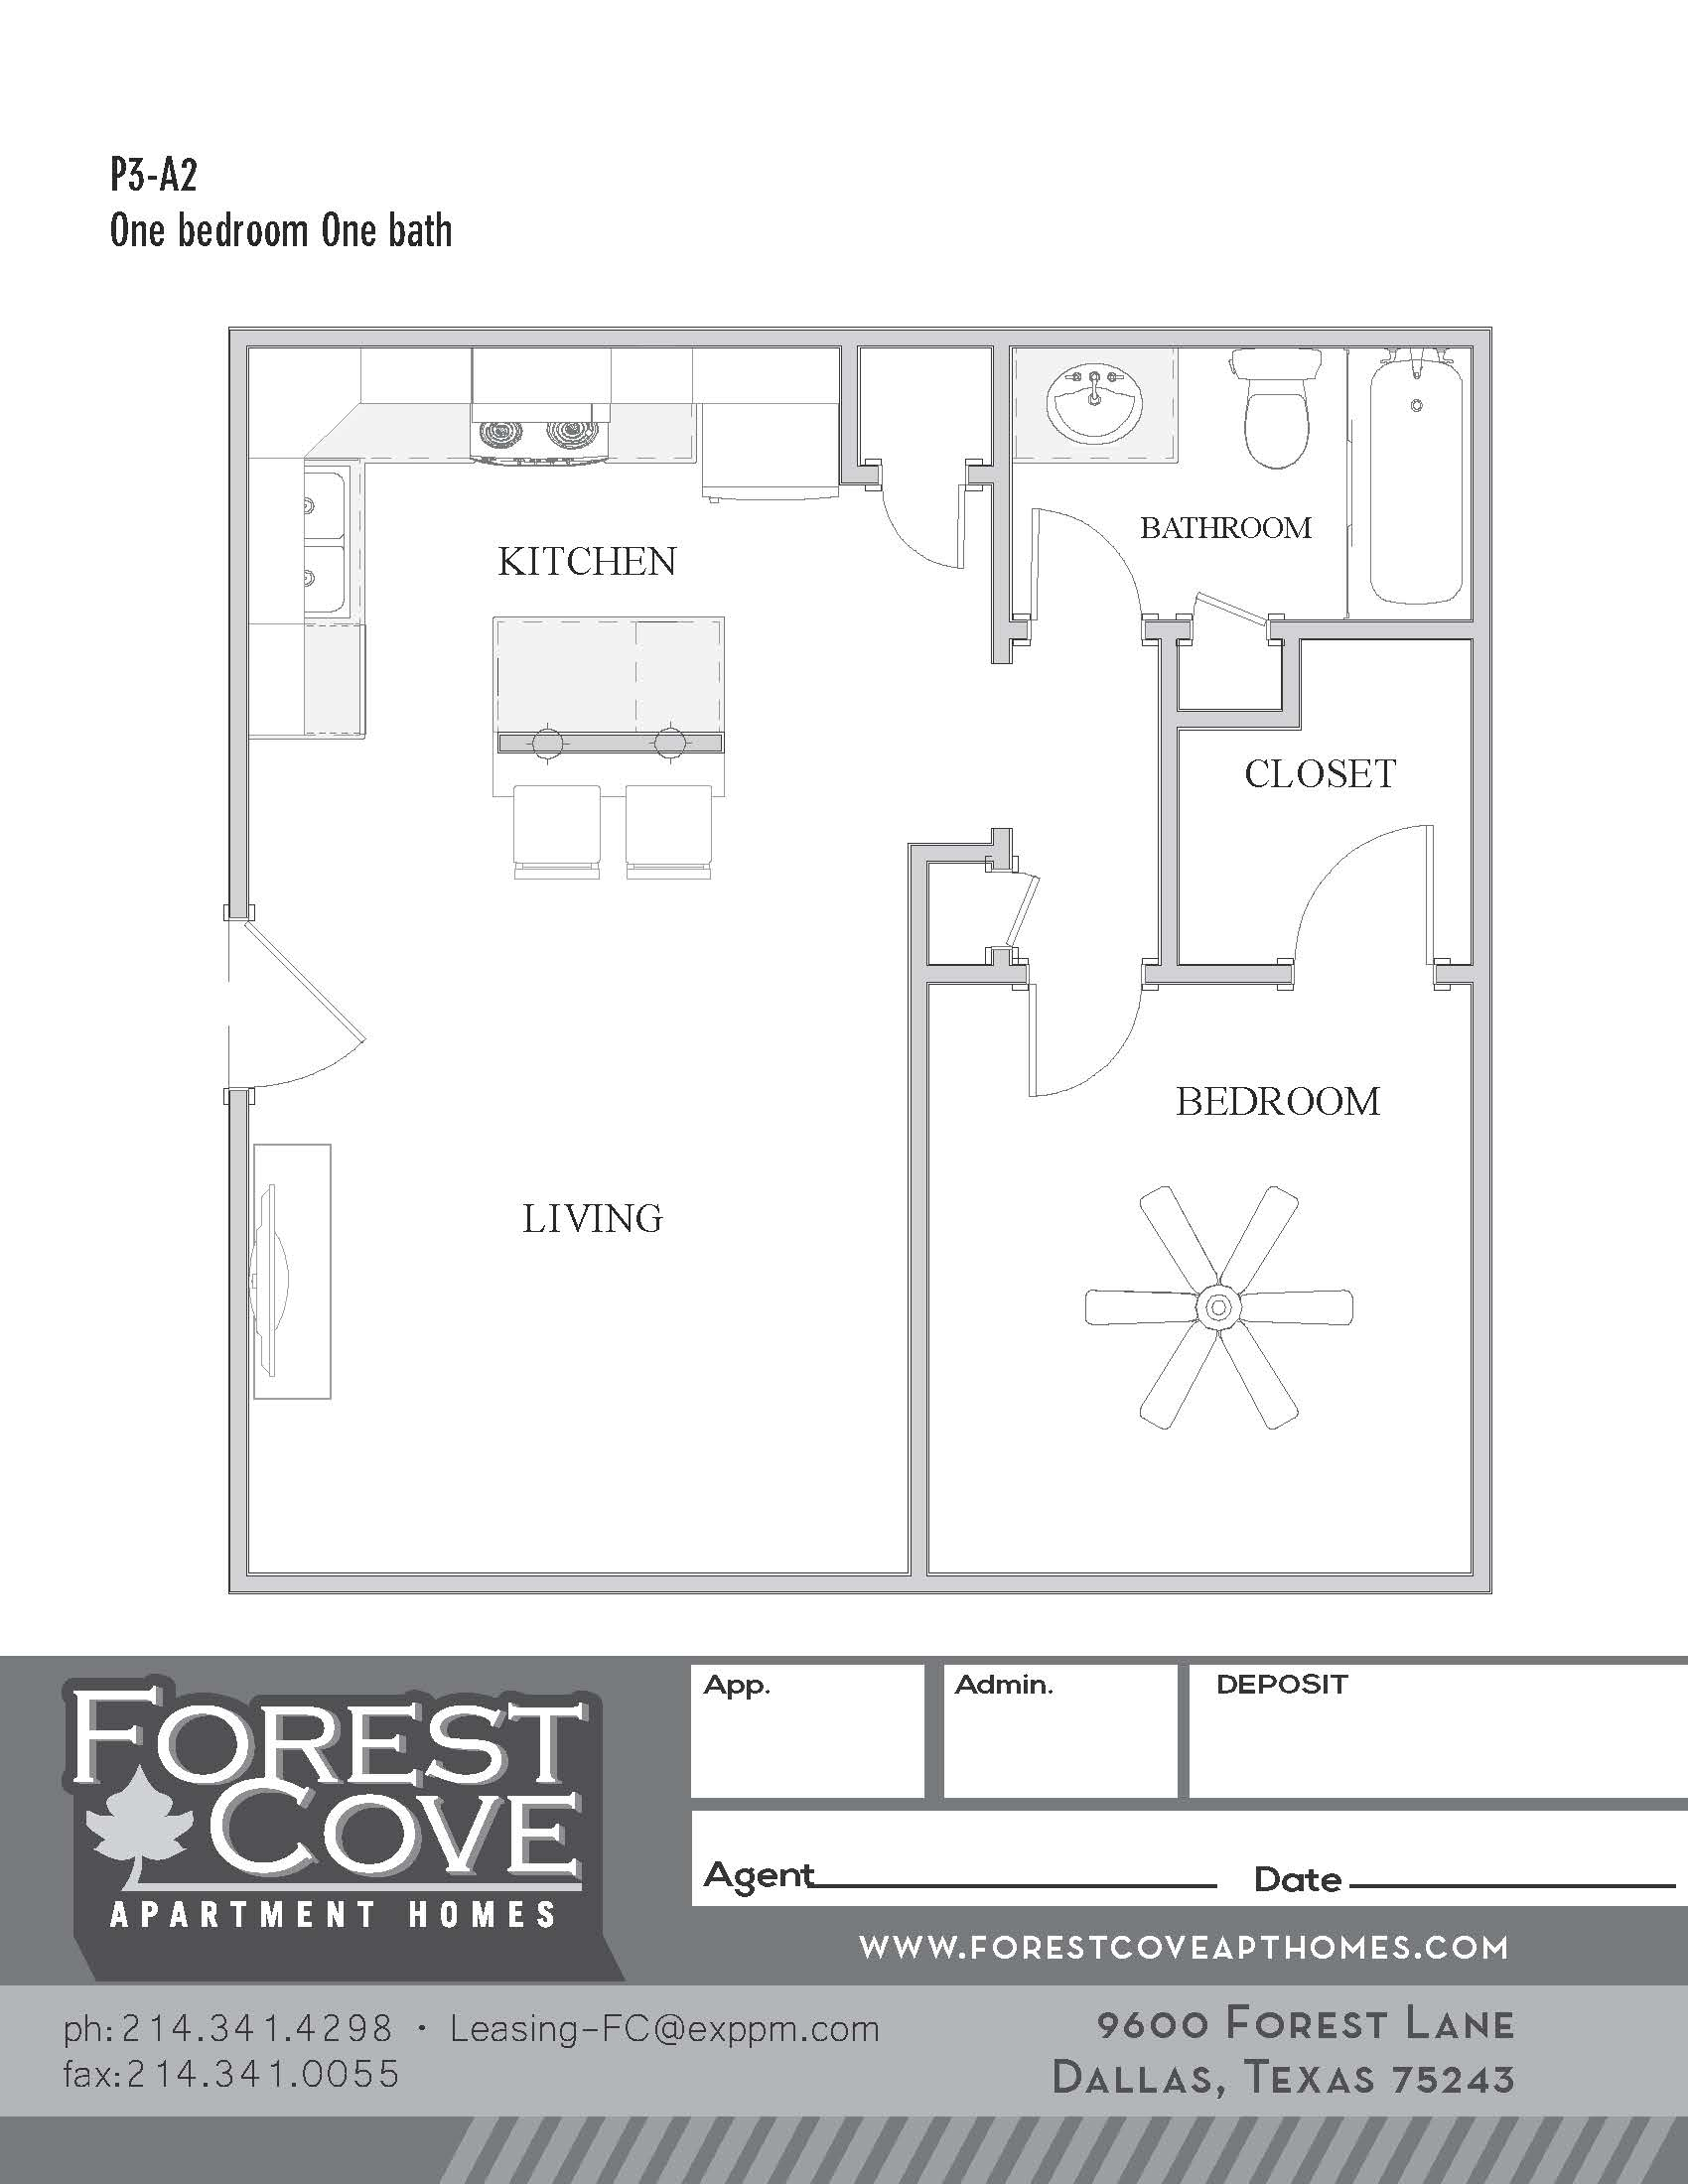 Forest Cove Apartments - Floorplan - 3-A2